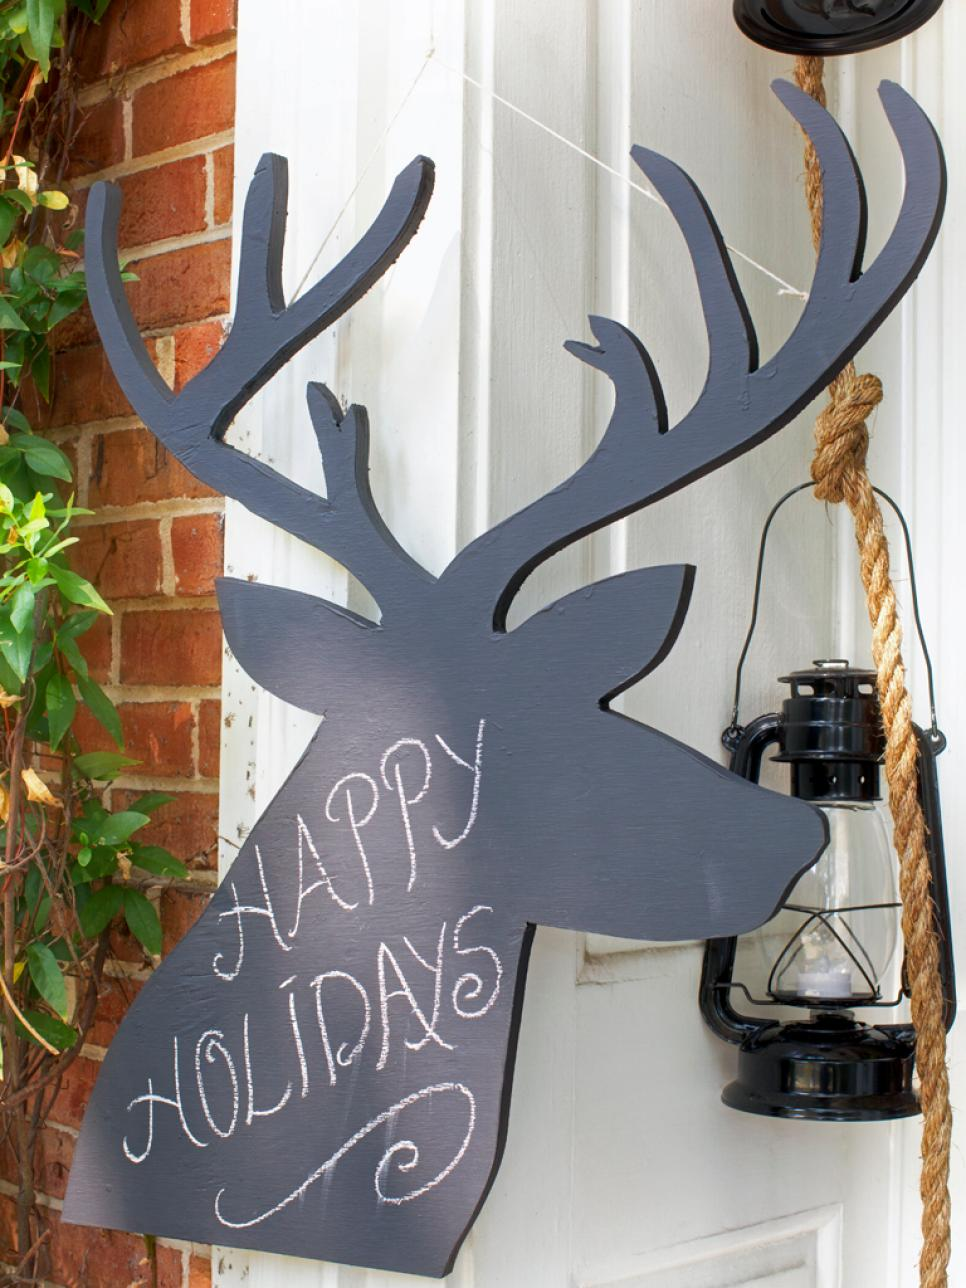 Christmas wooden lawn decorations - Chalkboard Reindeers Christmas Decoration